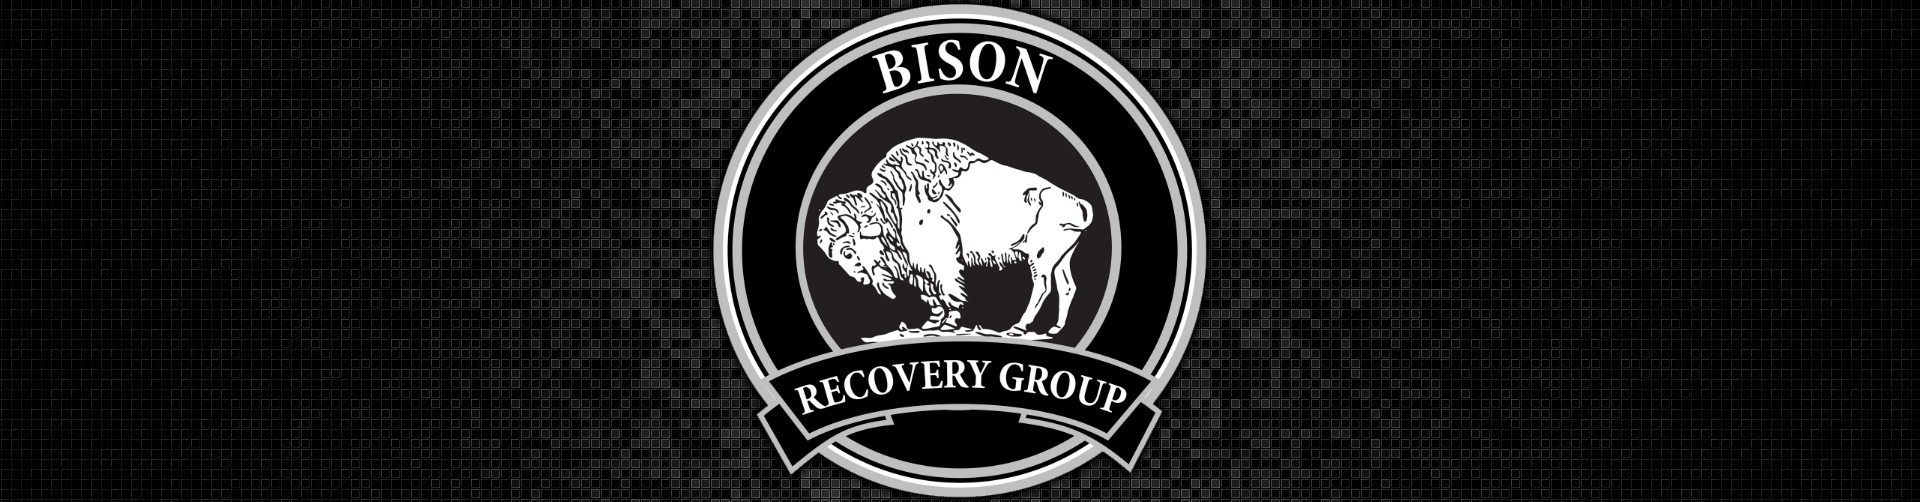 Bison Recovery Group